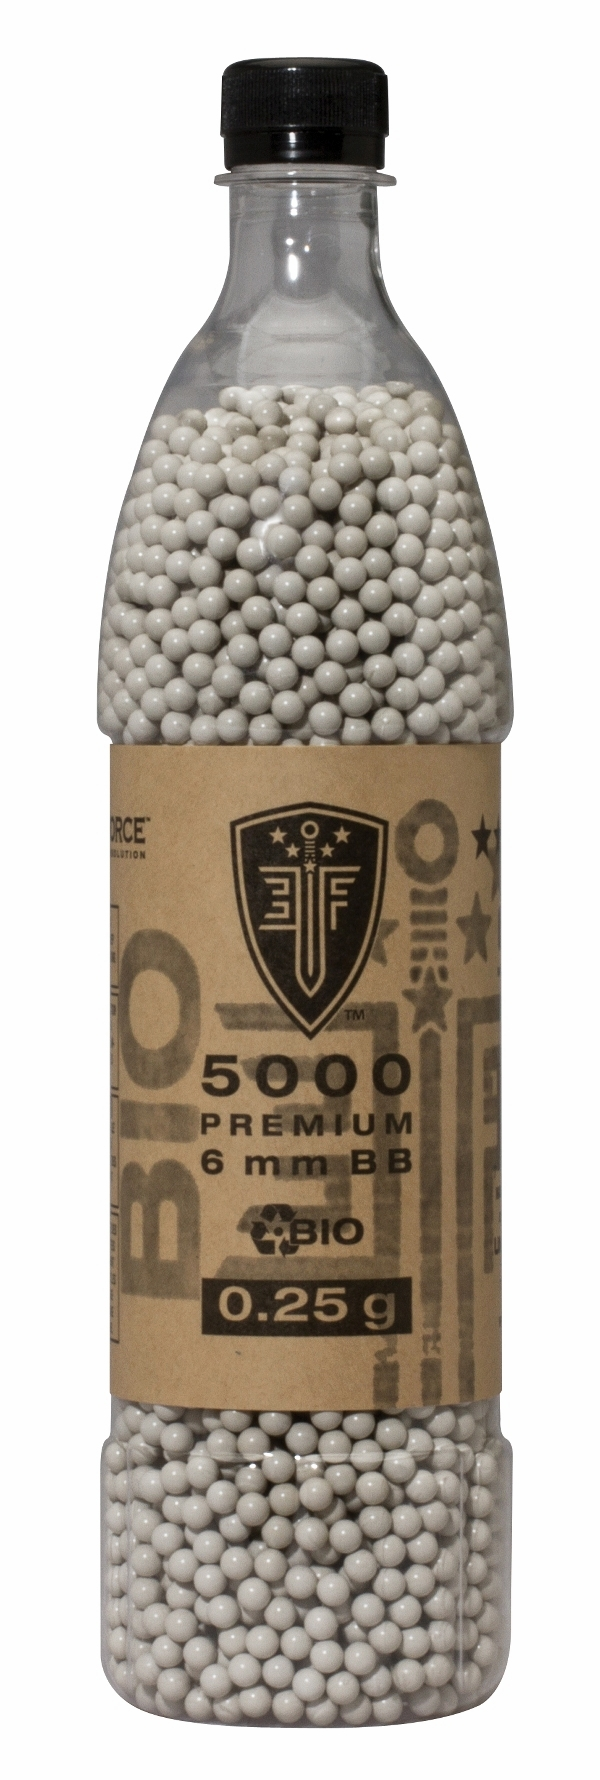 Elite Force .25g Competition BB's 5000ct.